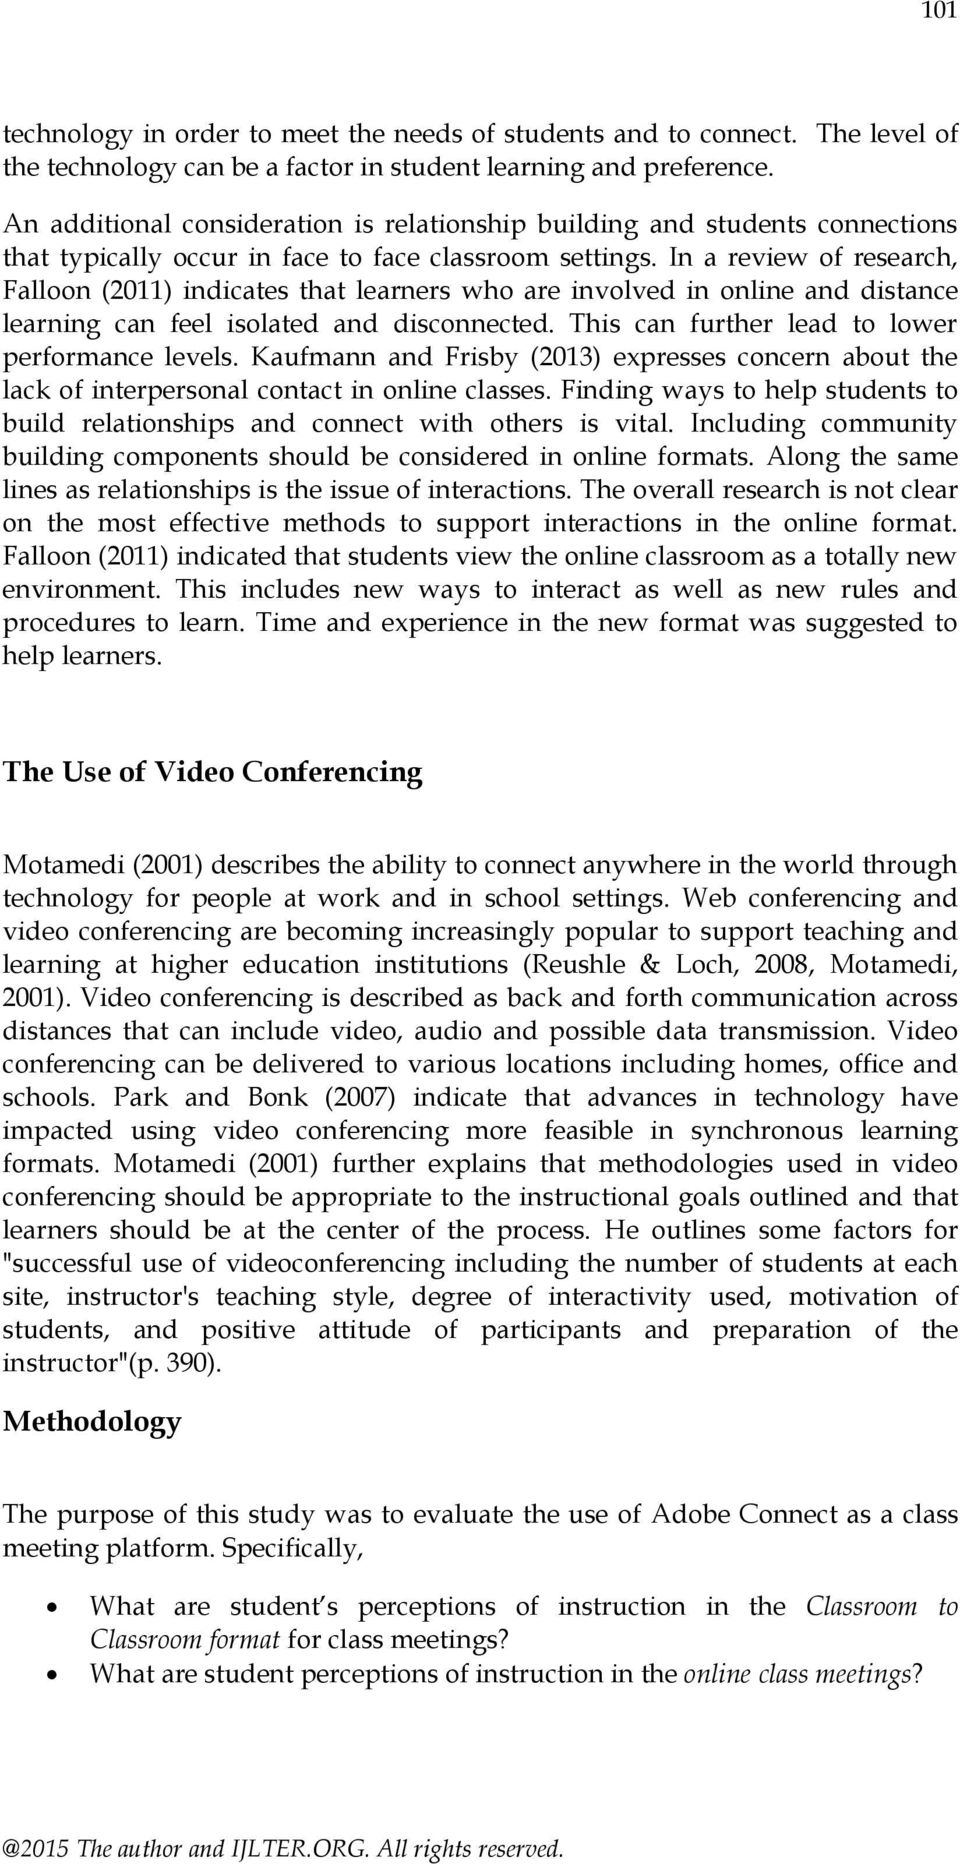 In a review of research, Falloon (2011) indicates that learners who are involved in online and distance learning can feel isolated and disconnected. This can further lead to lower performance levels.